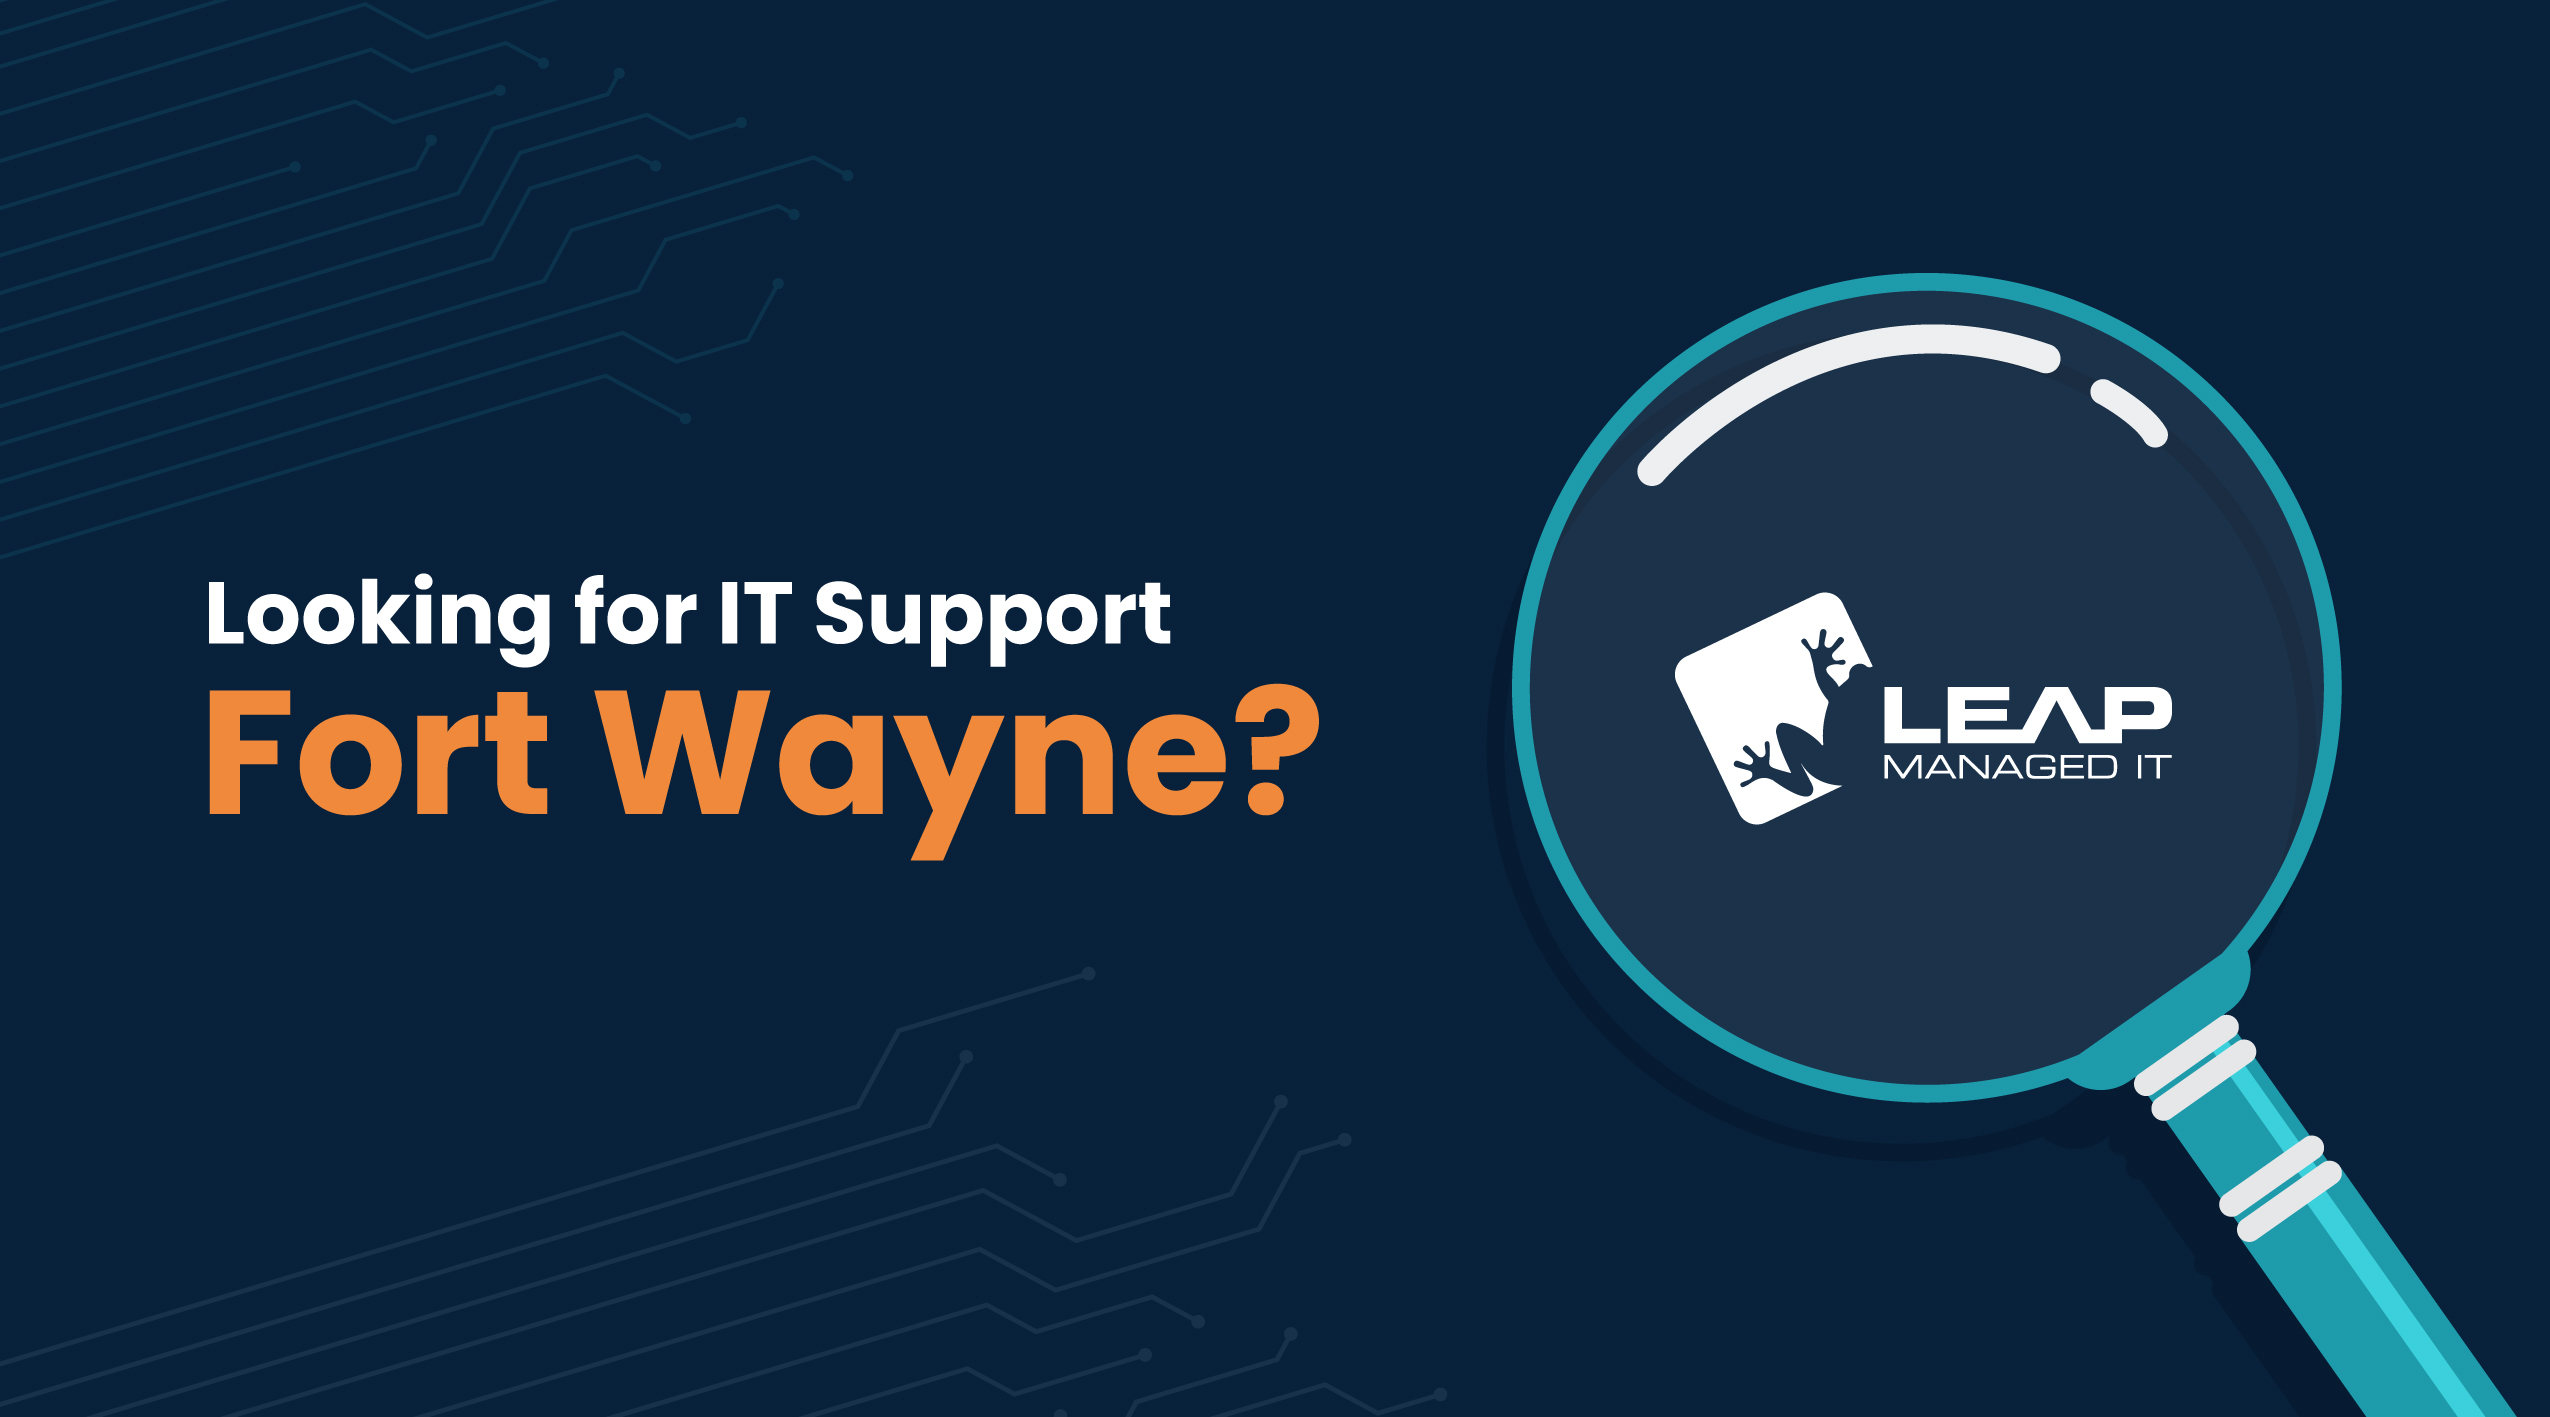 Looking for IT Support Fort Wayne?